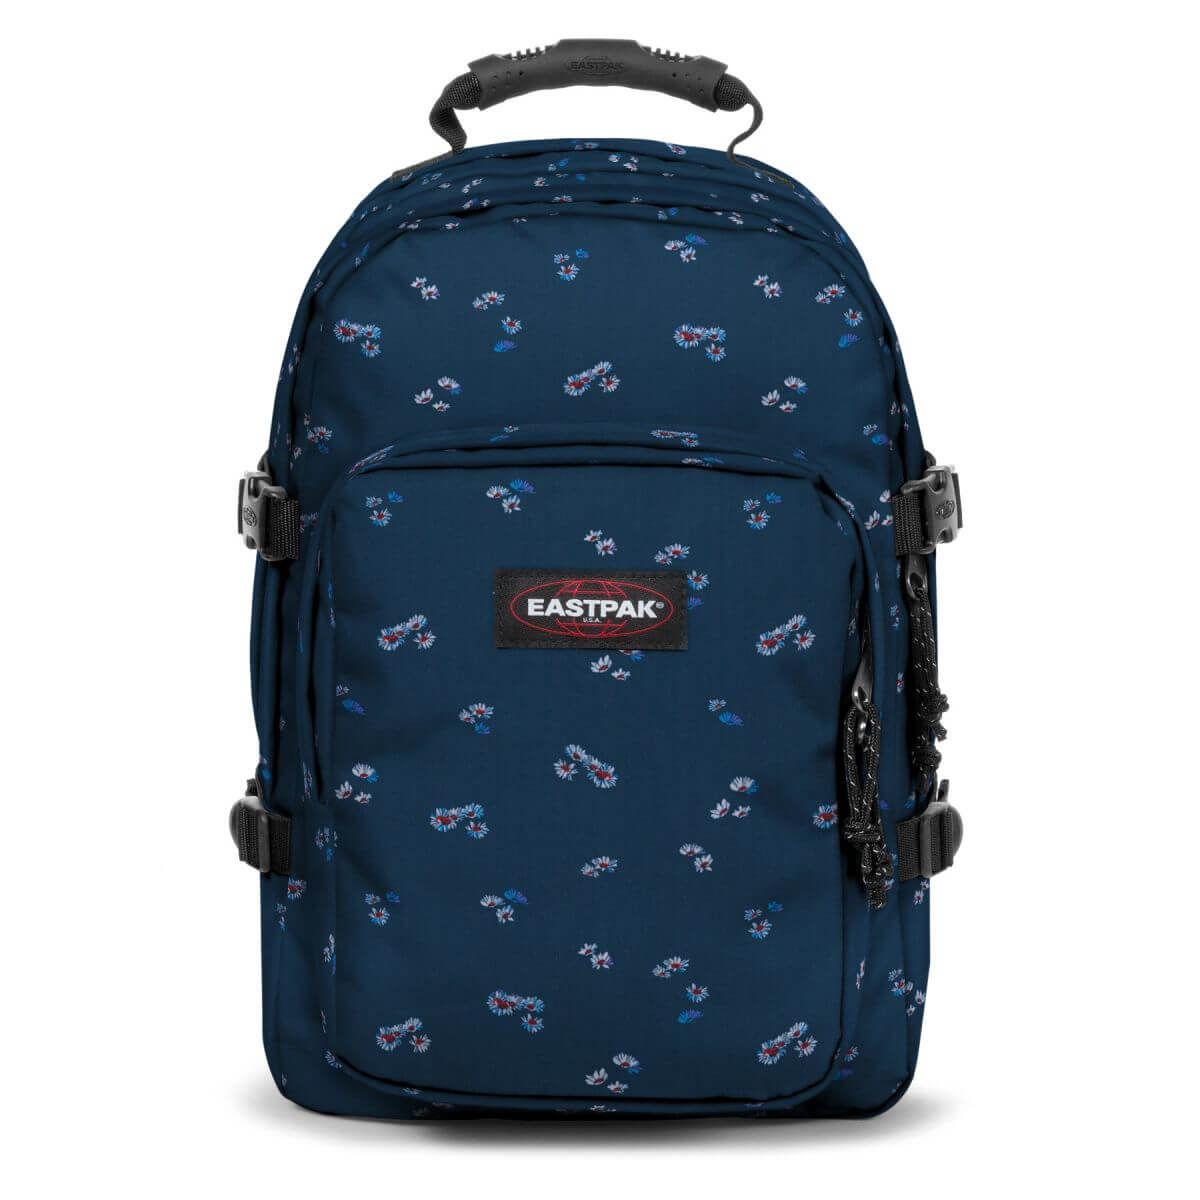 Eastpak Provider Bliss Cloud